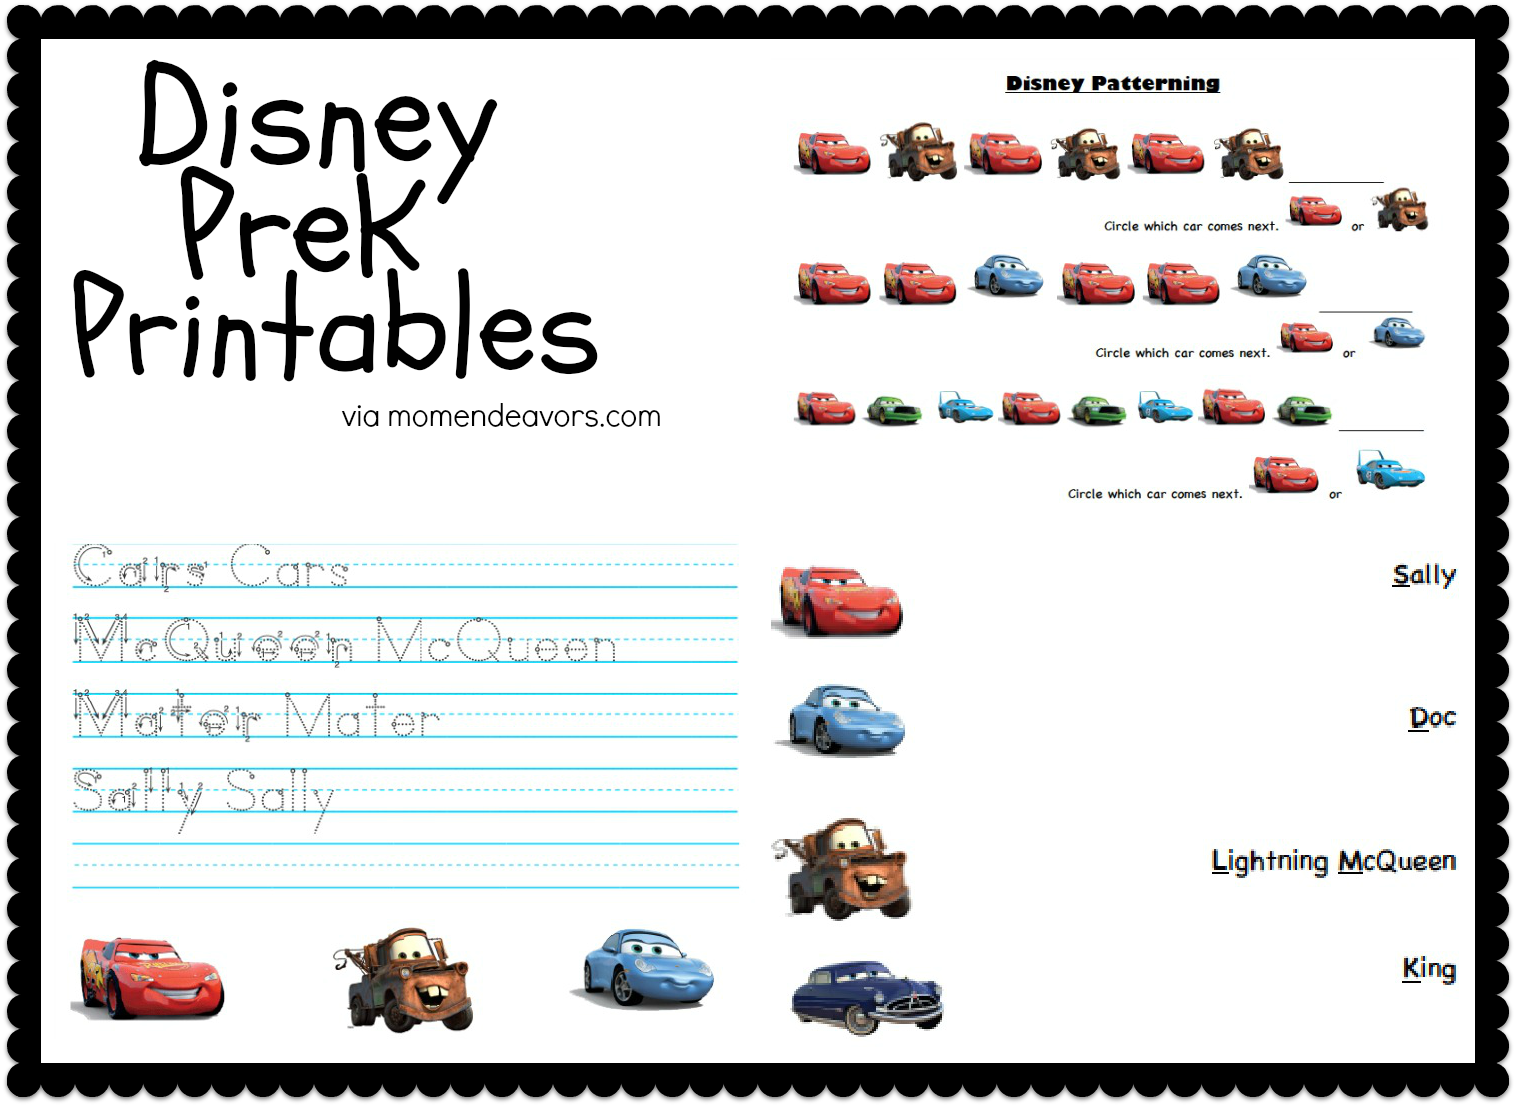 Worksheets Disney Worksheets disney pixar cars prek printable activity sheets travel tuesday